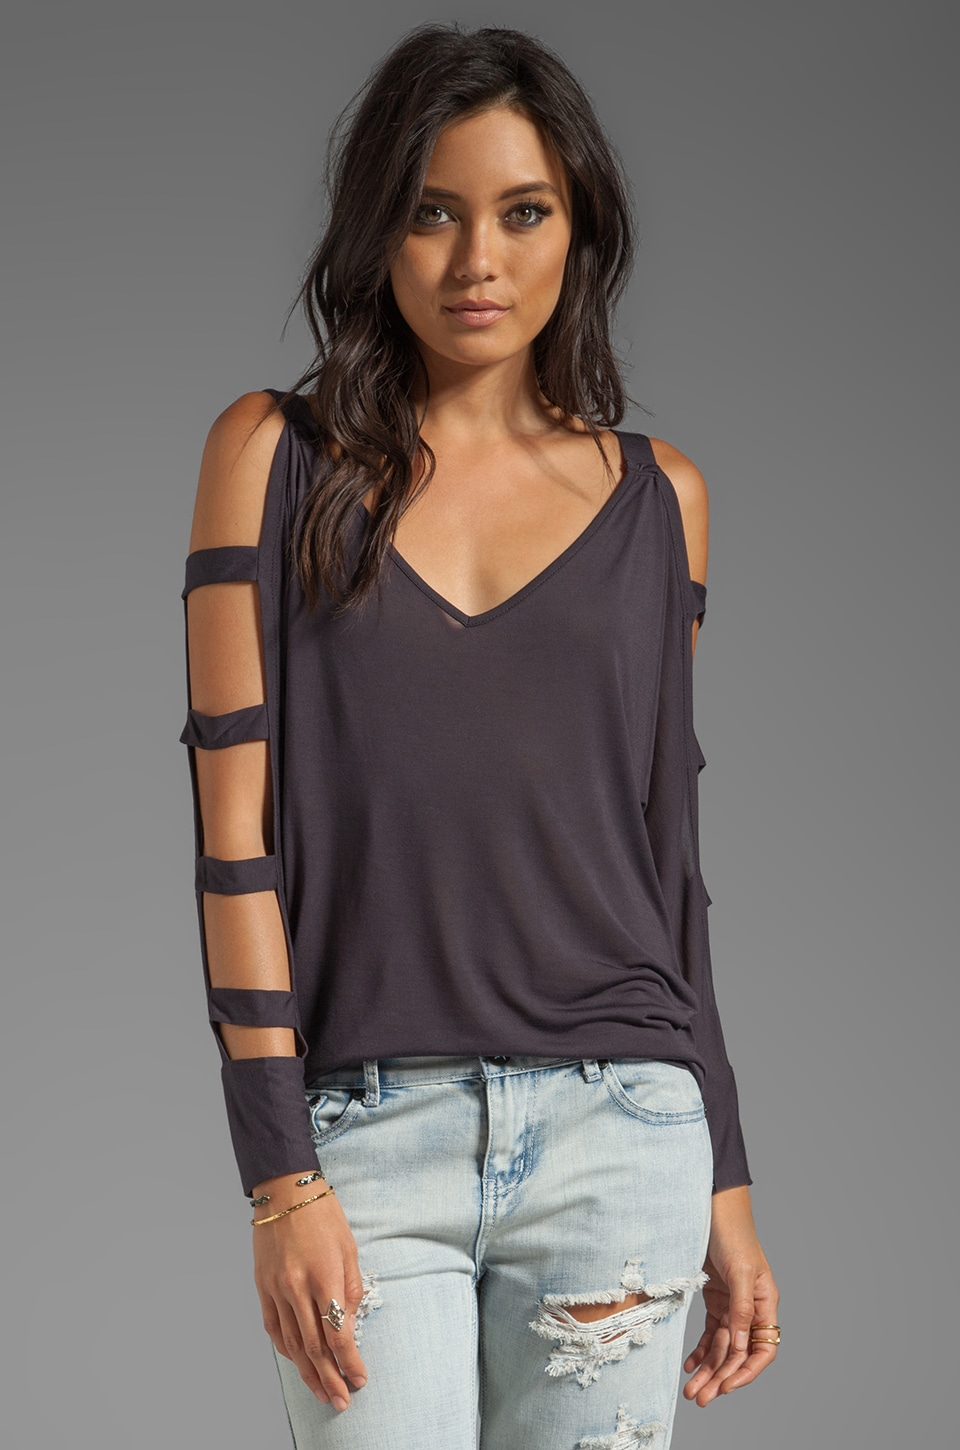 Blue Life Ladder Top in Faded Black